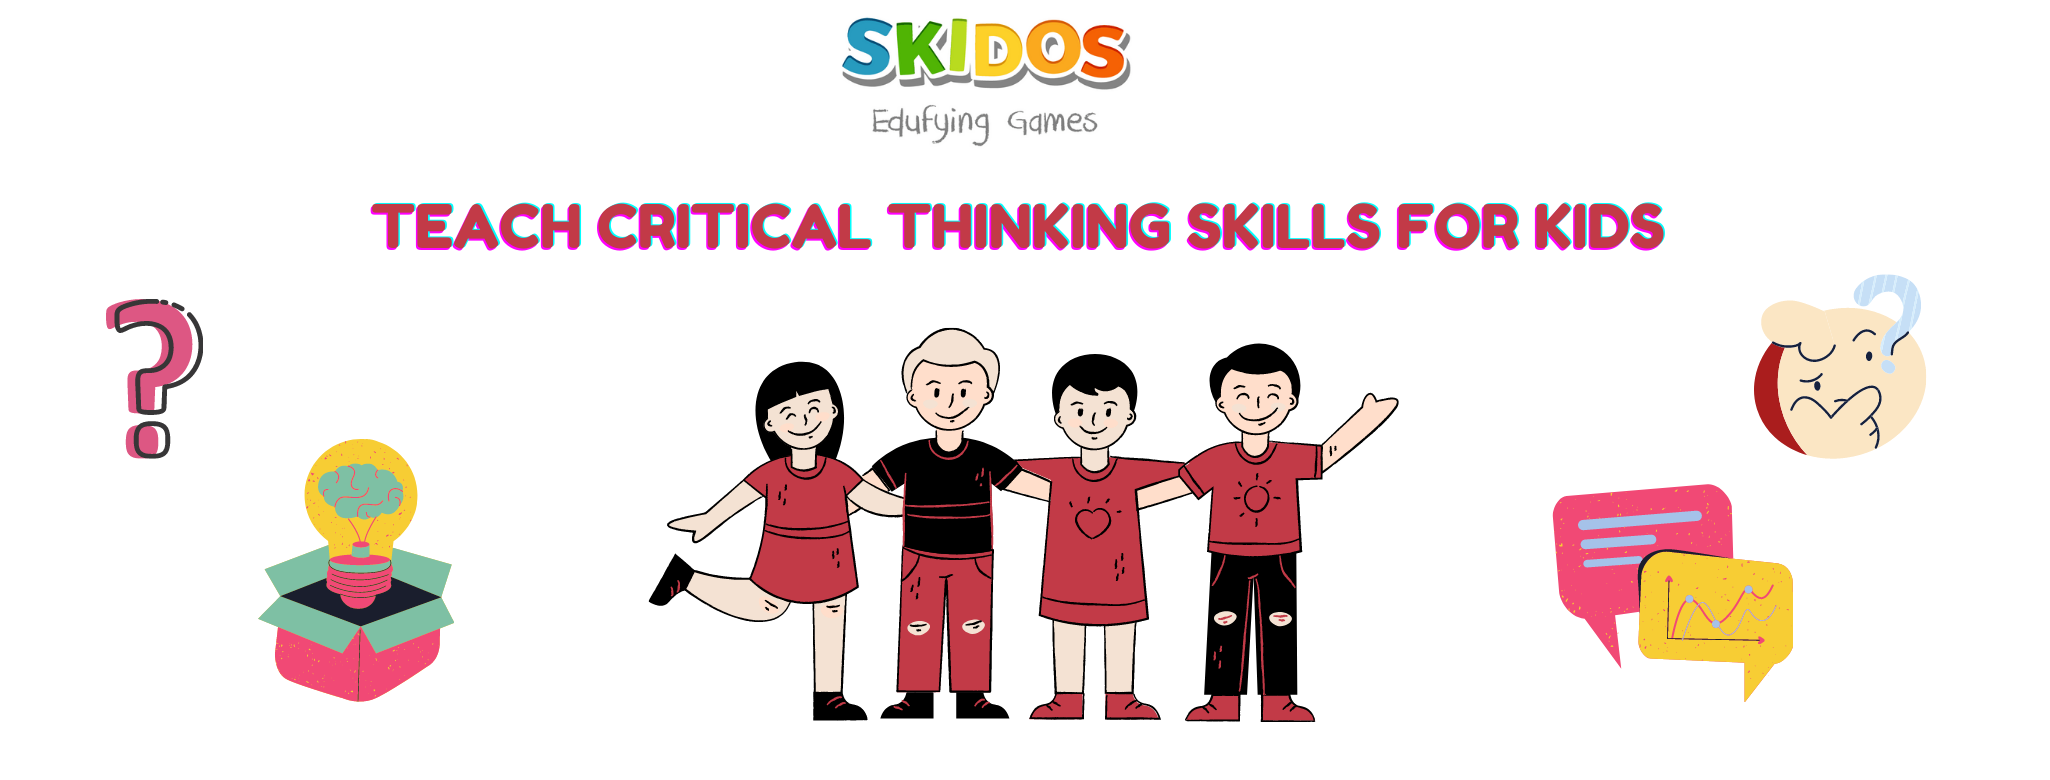 Creativity Skill for Kids Ultimate Guide: Tips, Resources [NEW]